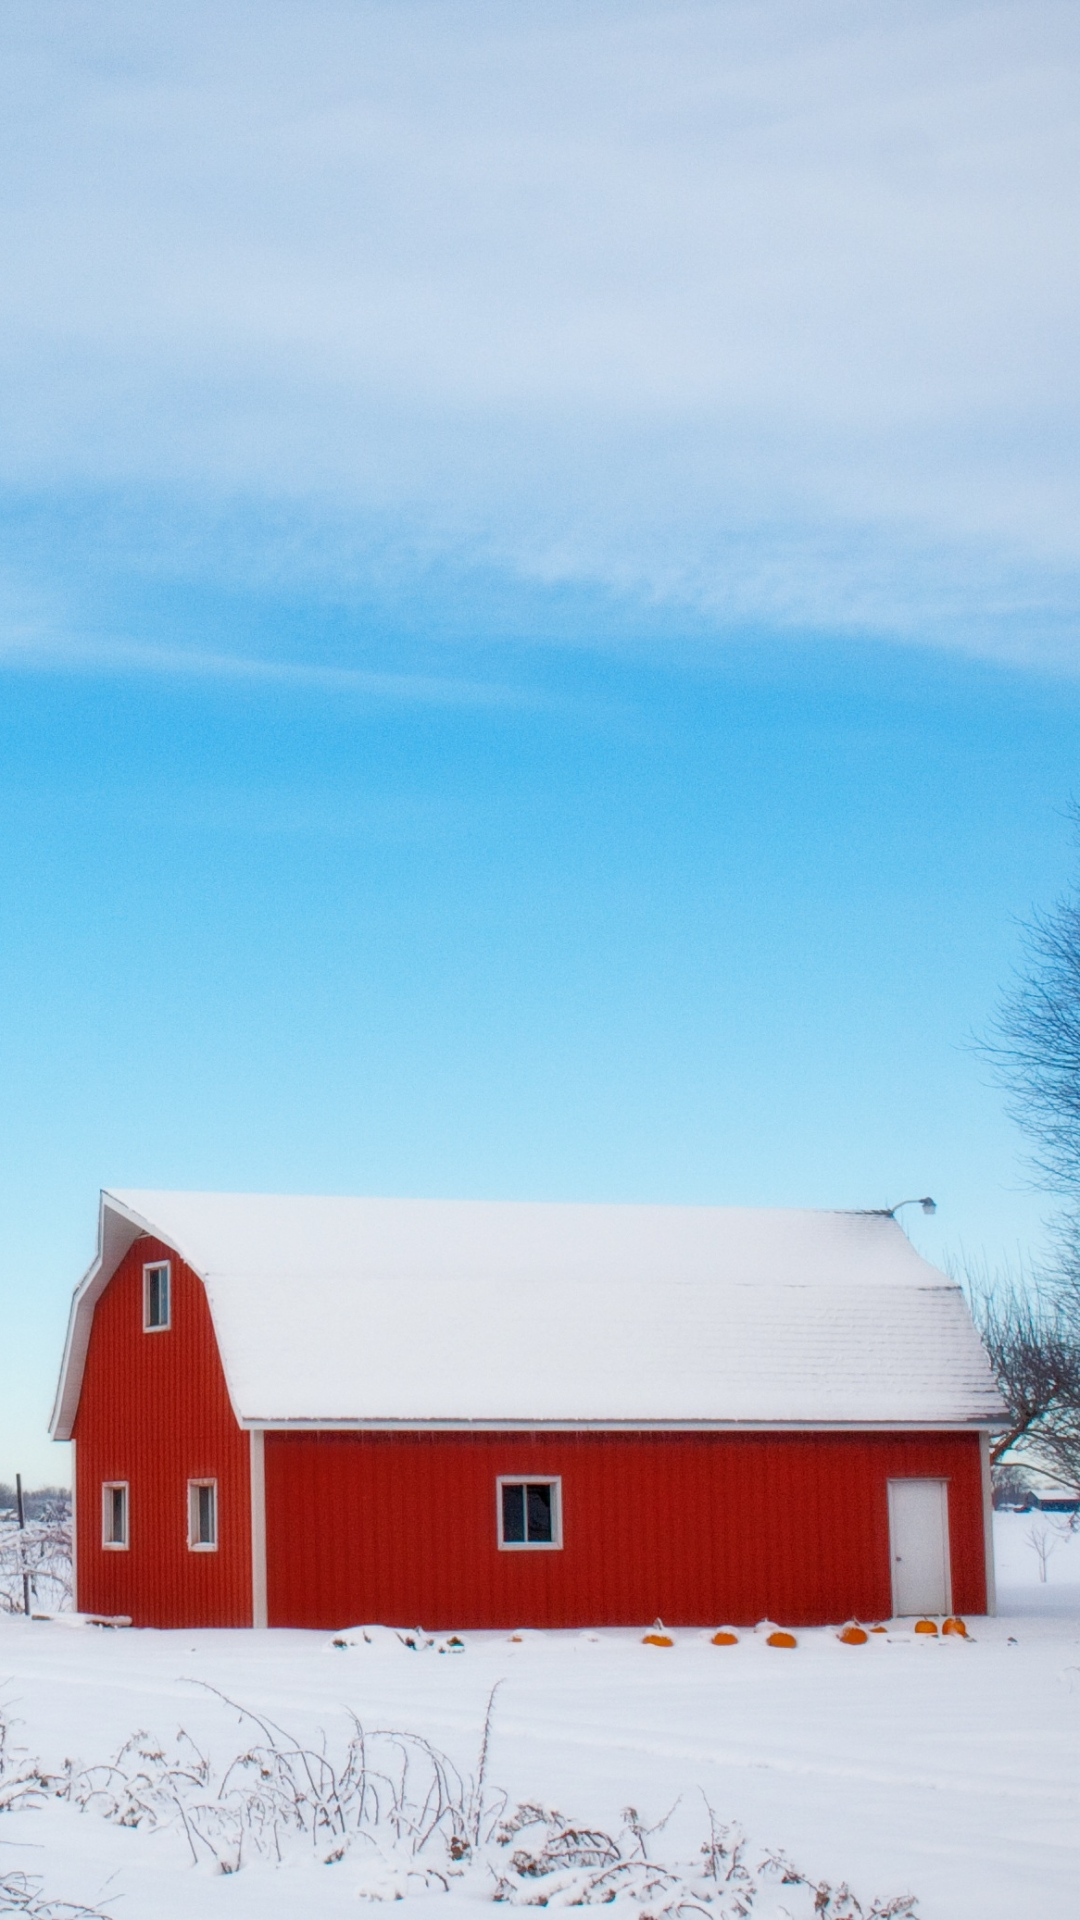 Barn-Winter-Sky-Tree-iPhone-wallpaper-wp3003484